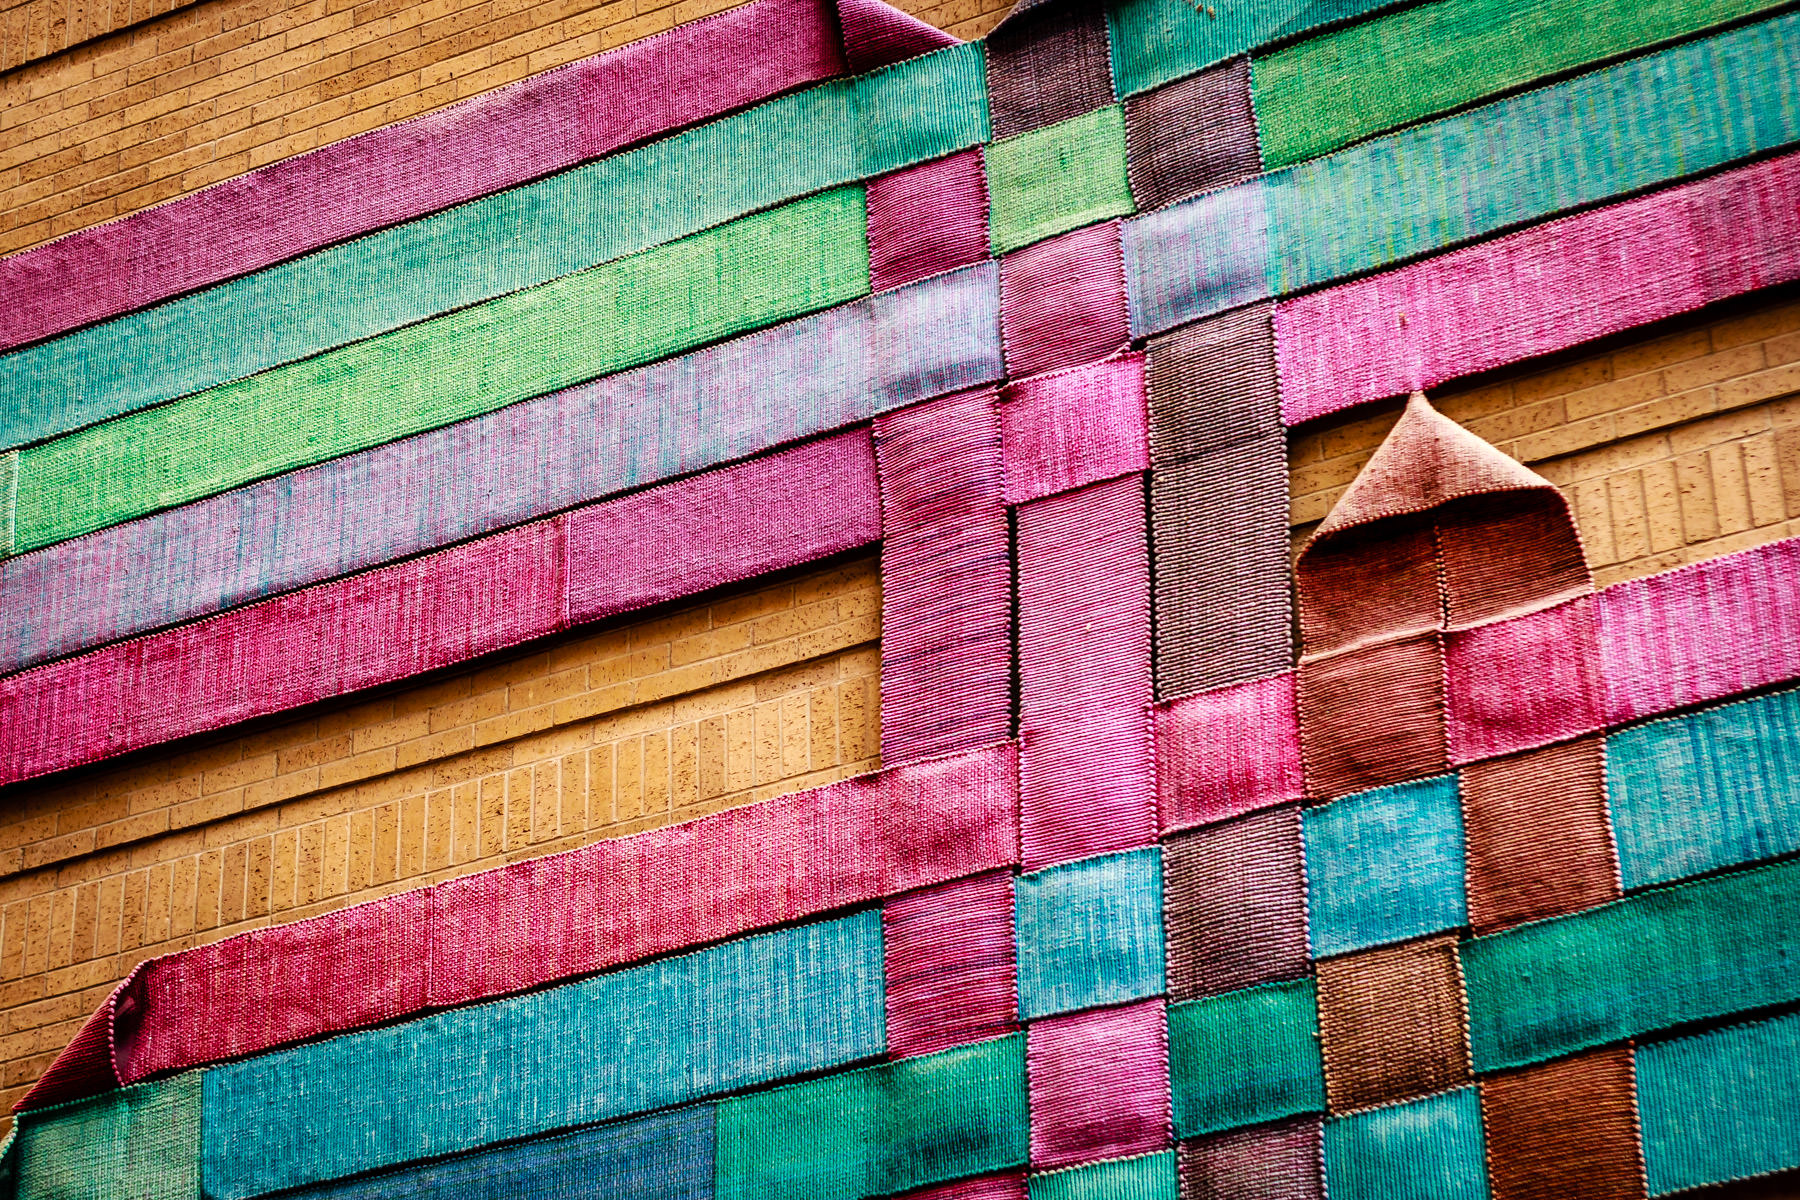 Textiles decorate the walls of the atrium in Texas A&M University's Horticulture and Forest Science Building.